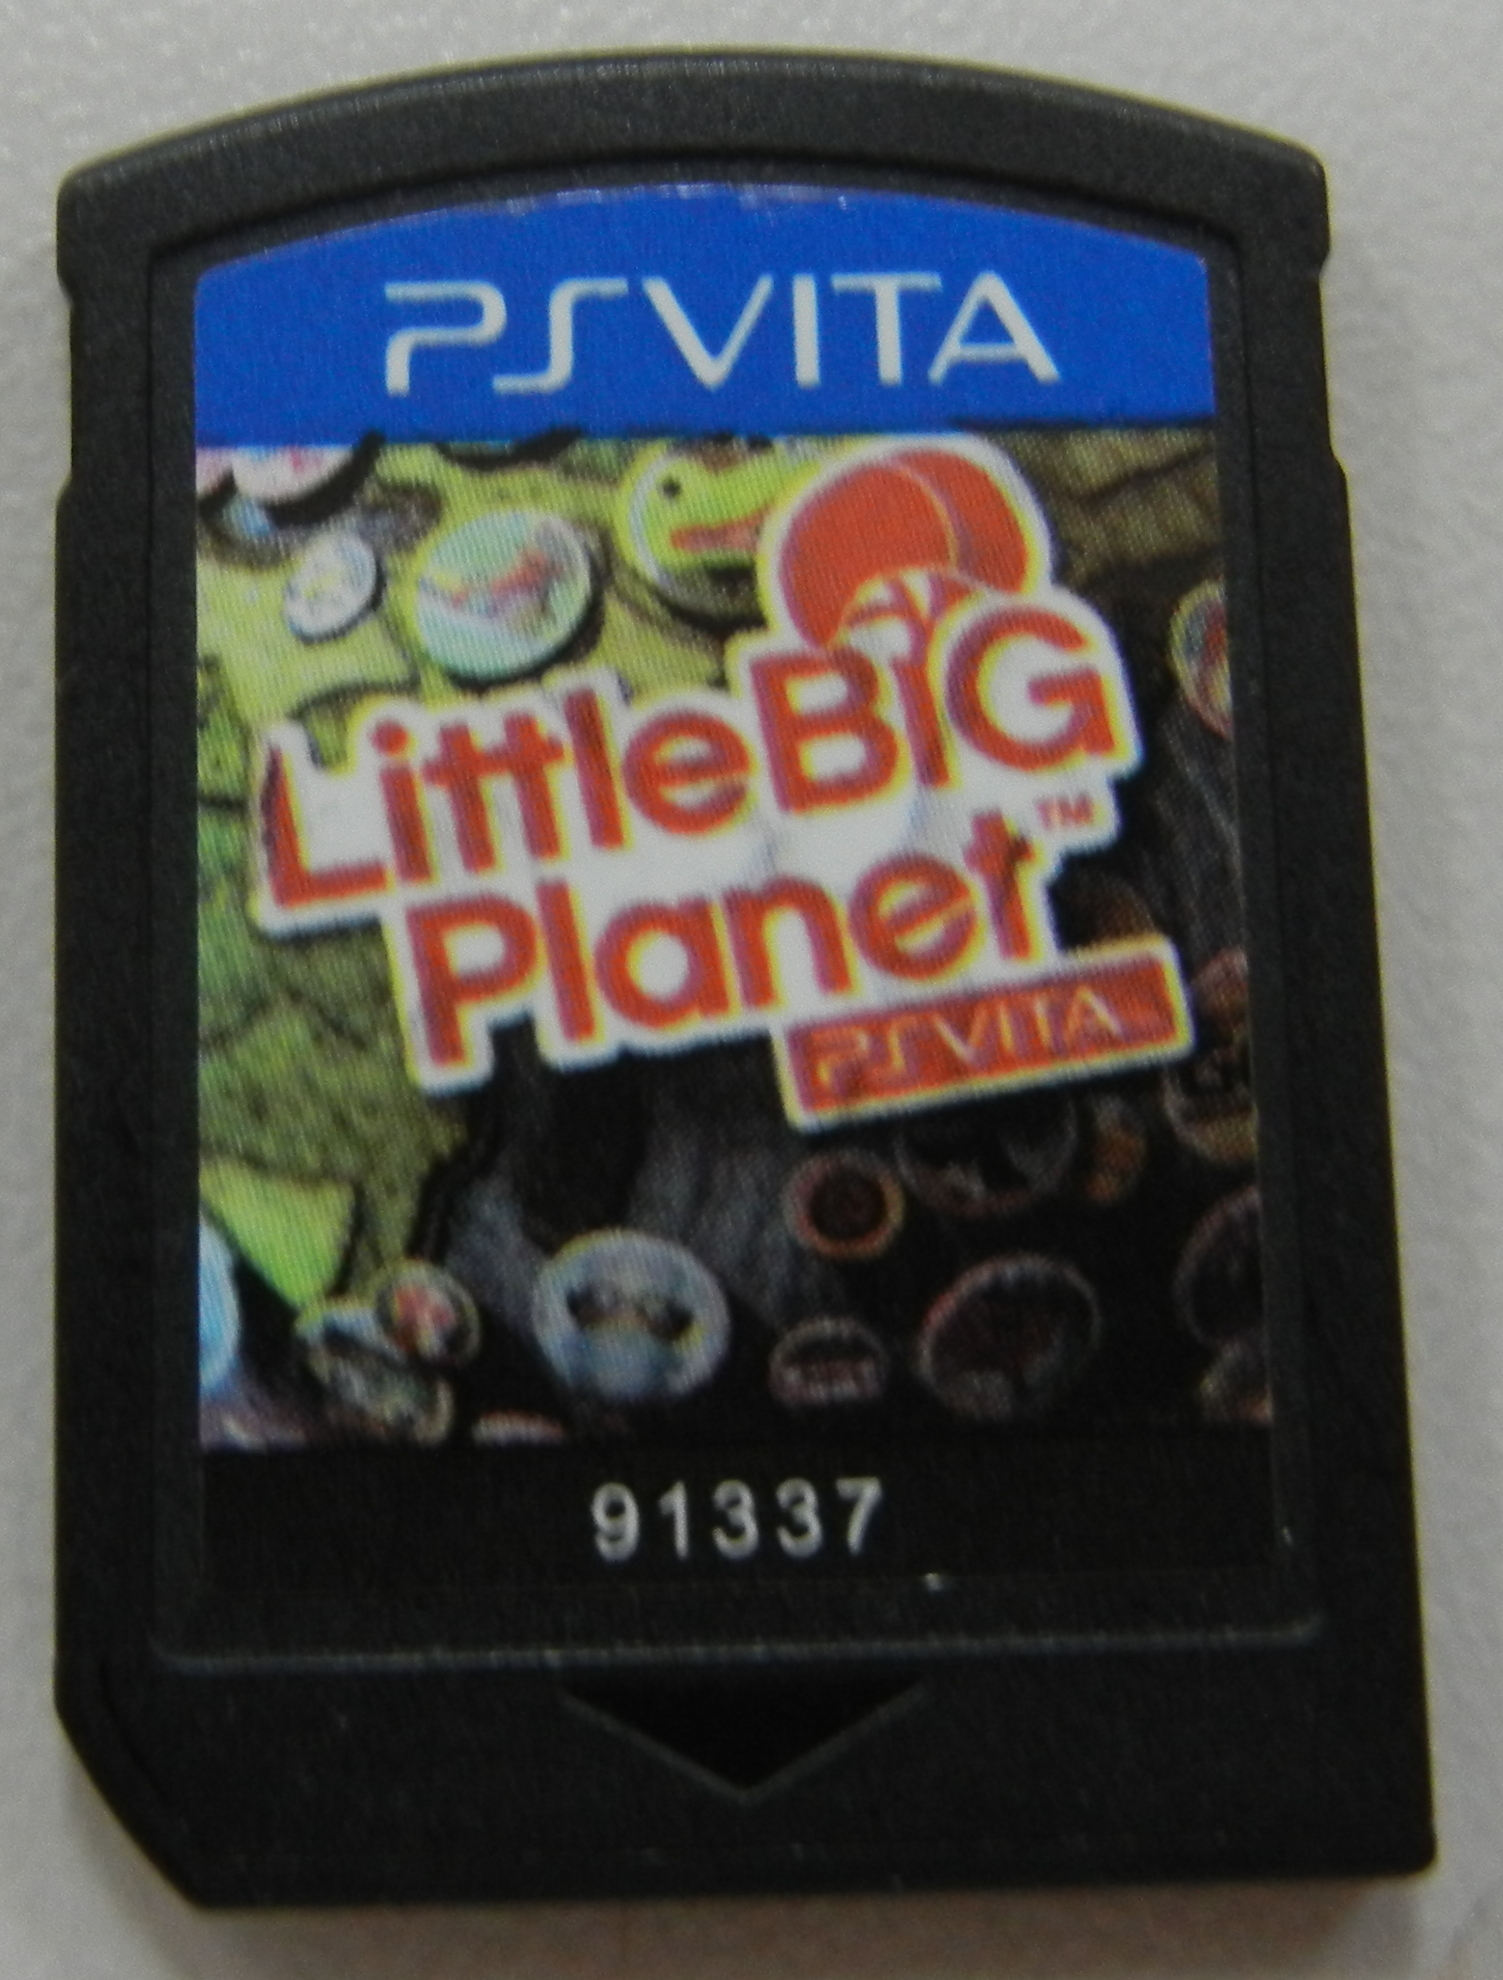 LITTLE BIG PLANET PSVITA GAMES